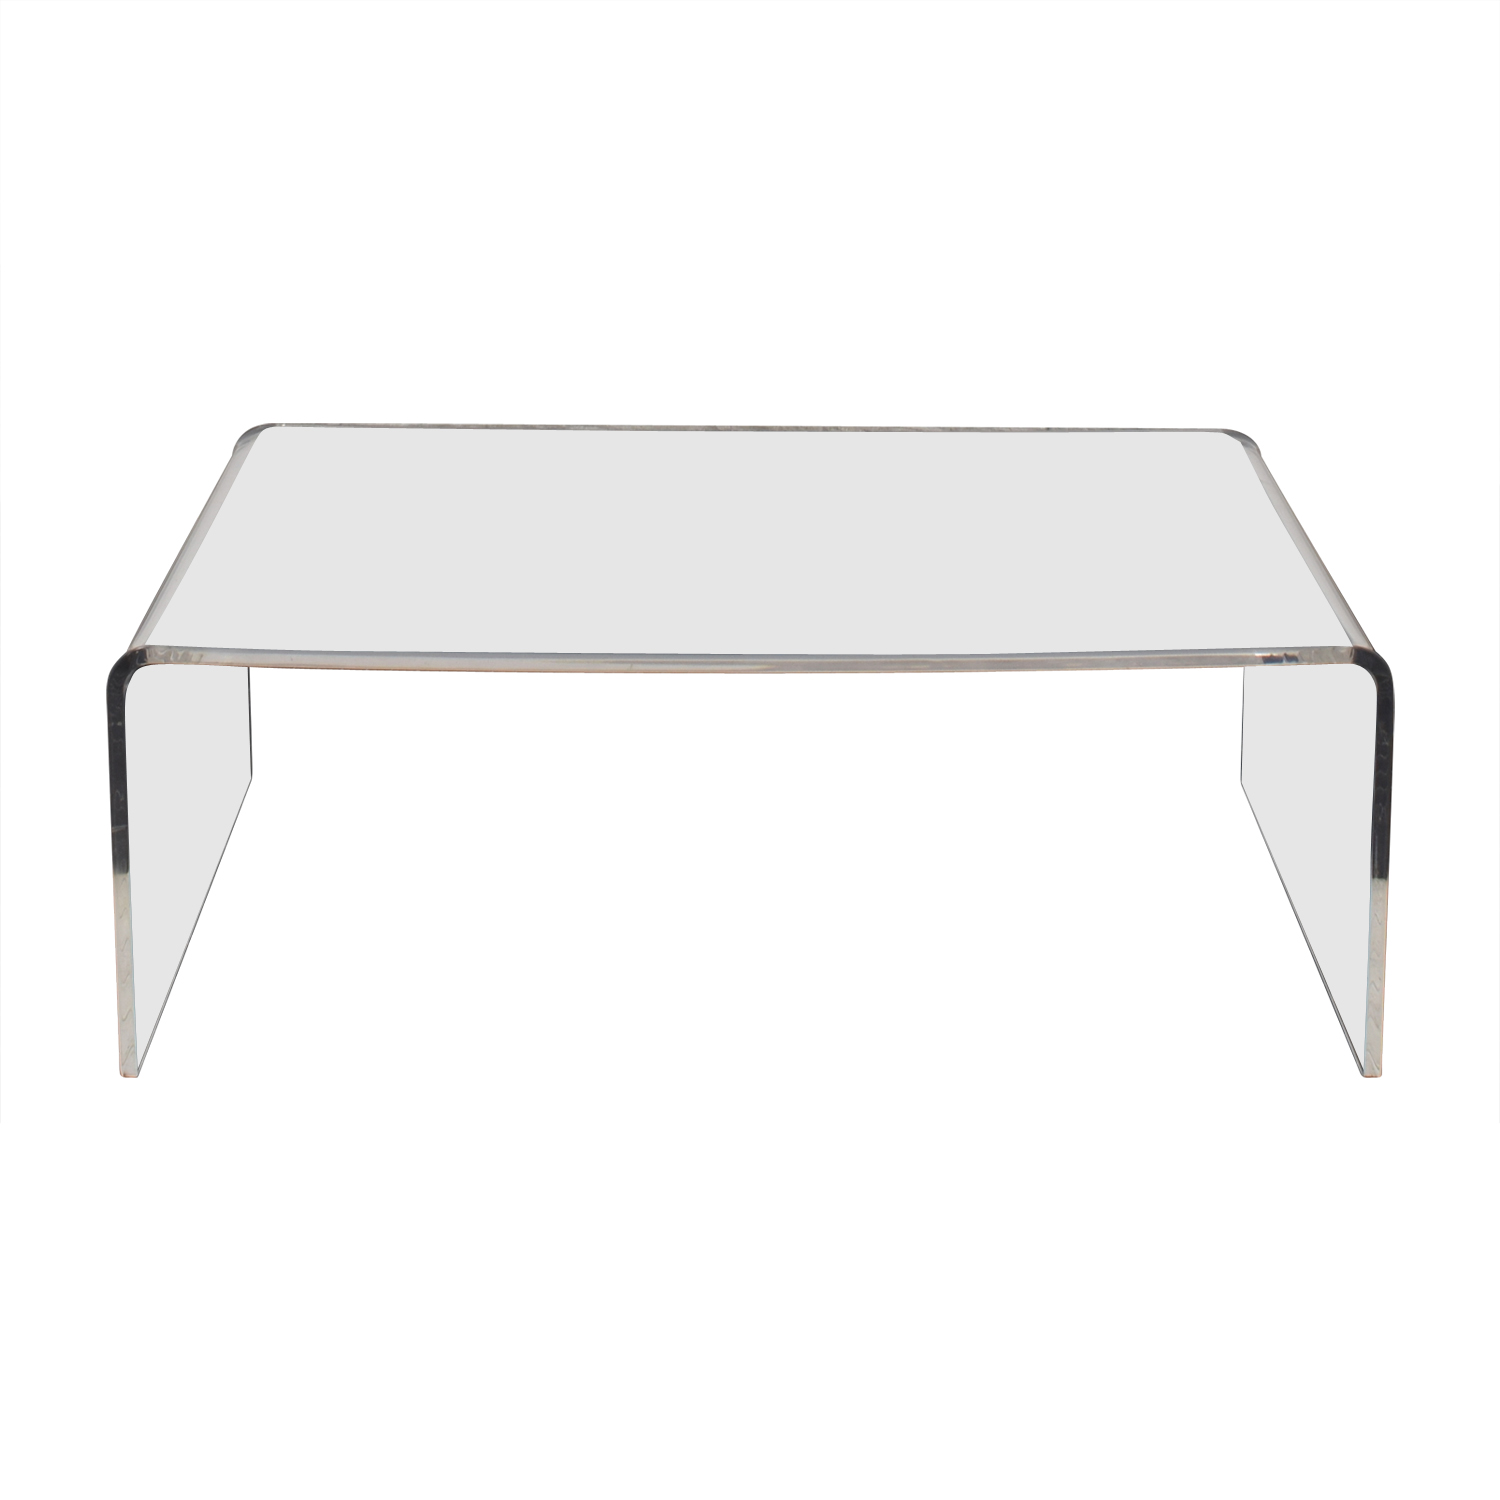 70% OFF   CB2 CB2 Acrylic Ghost Coffee Table / Tables